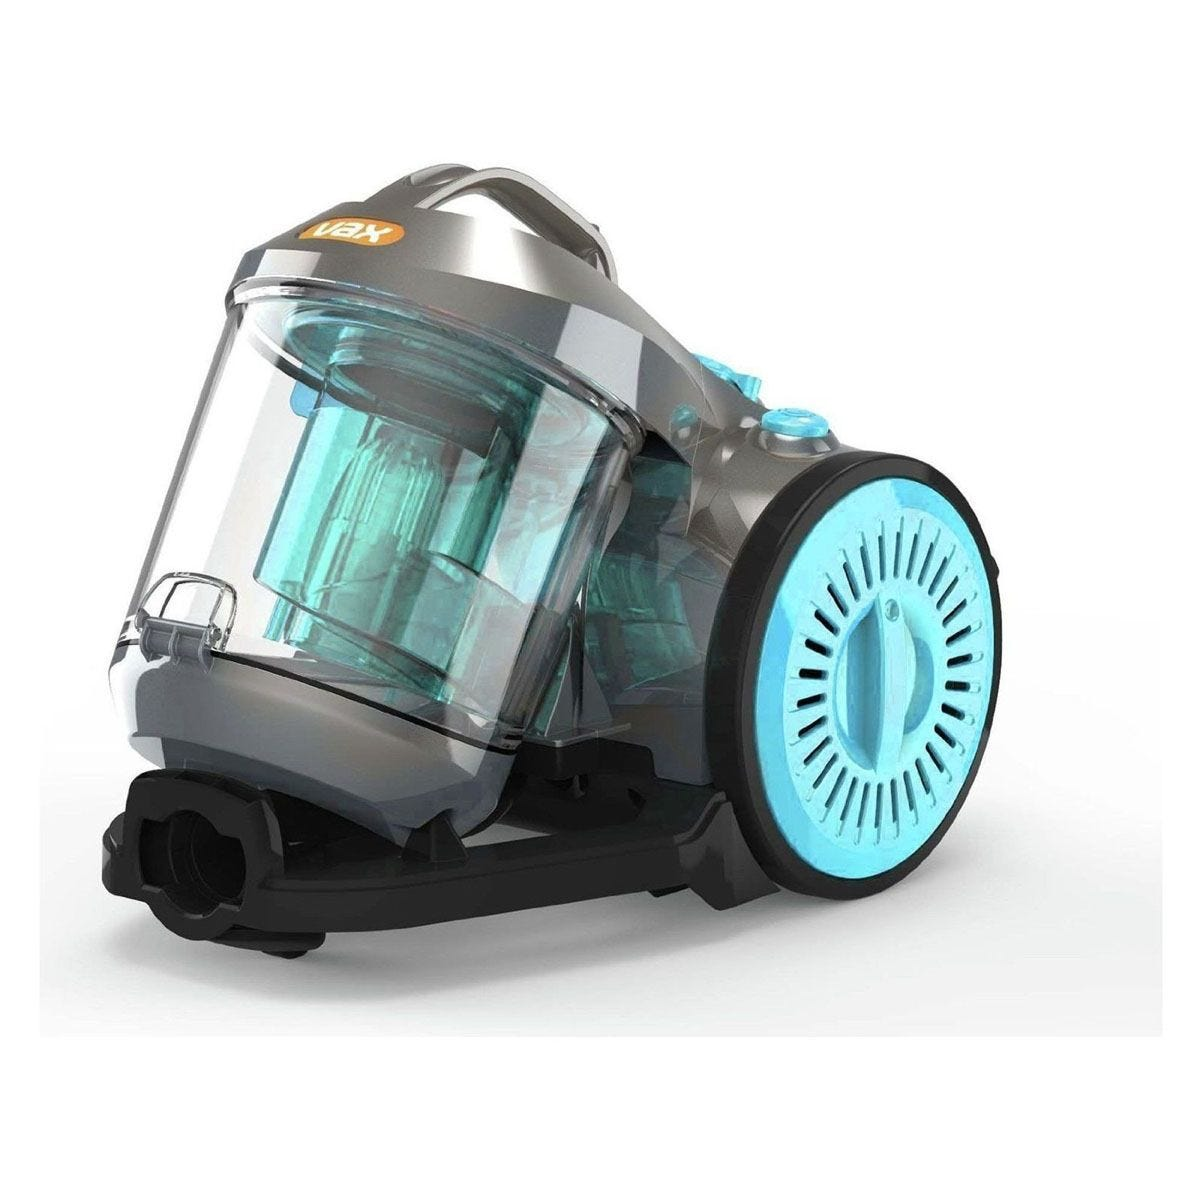 Vax Power AWC02 3 PET Bagless CylinderV1 Vacuum Cleaner - Grey / Blue